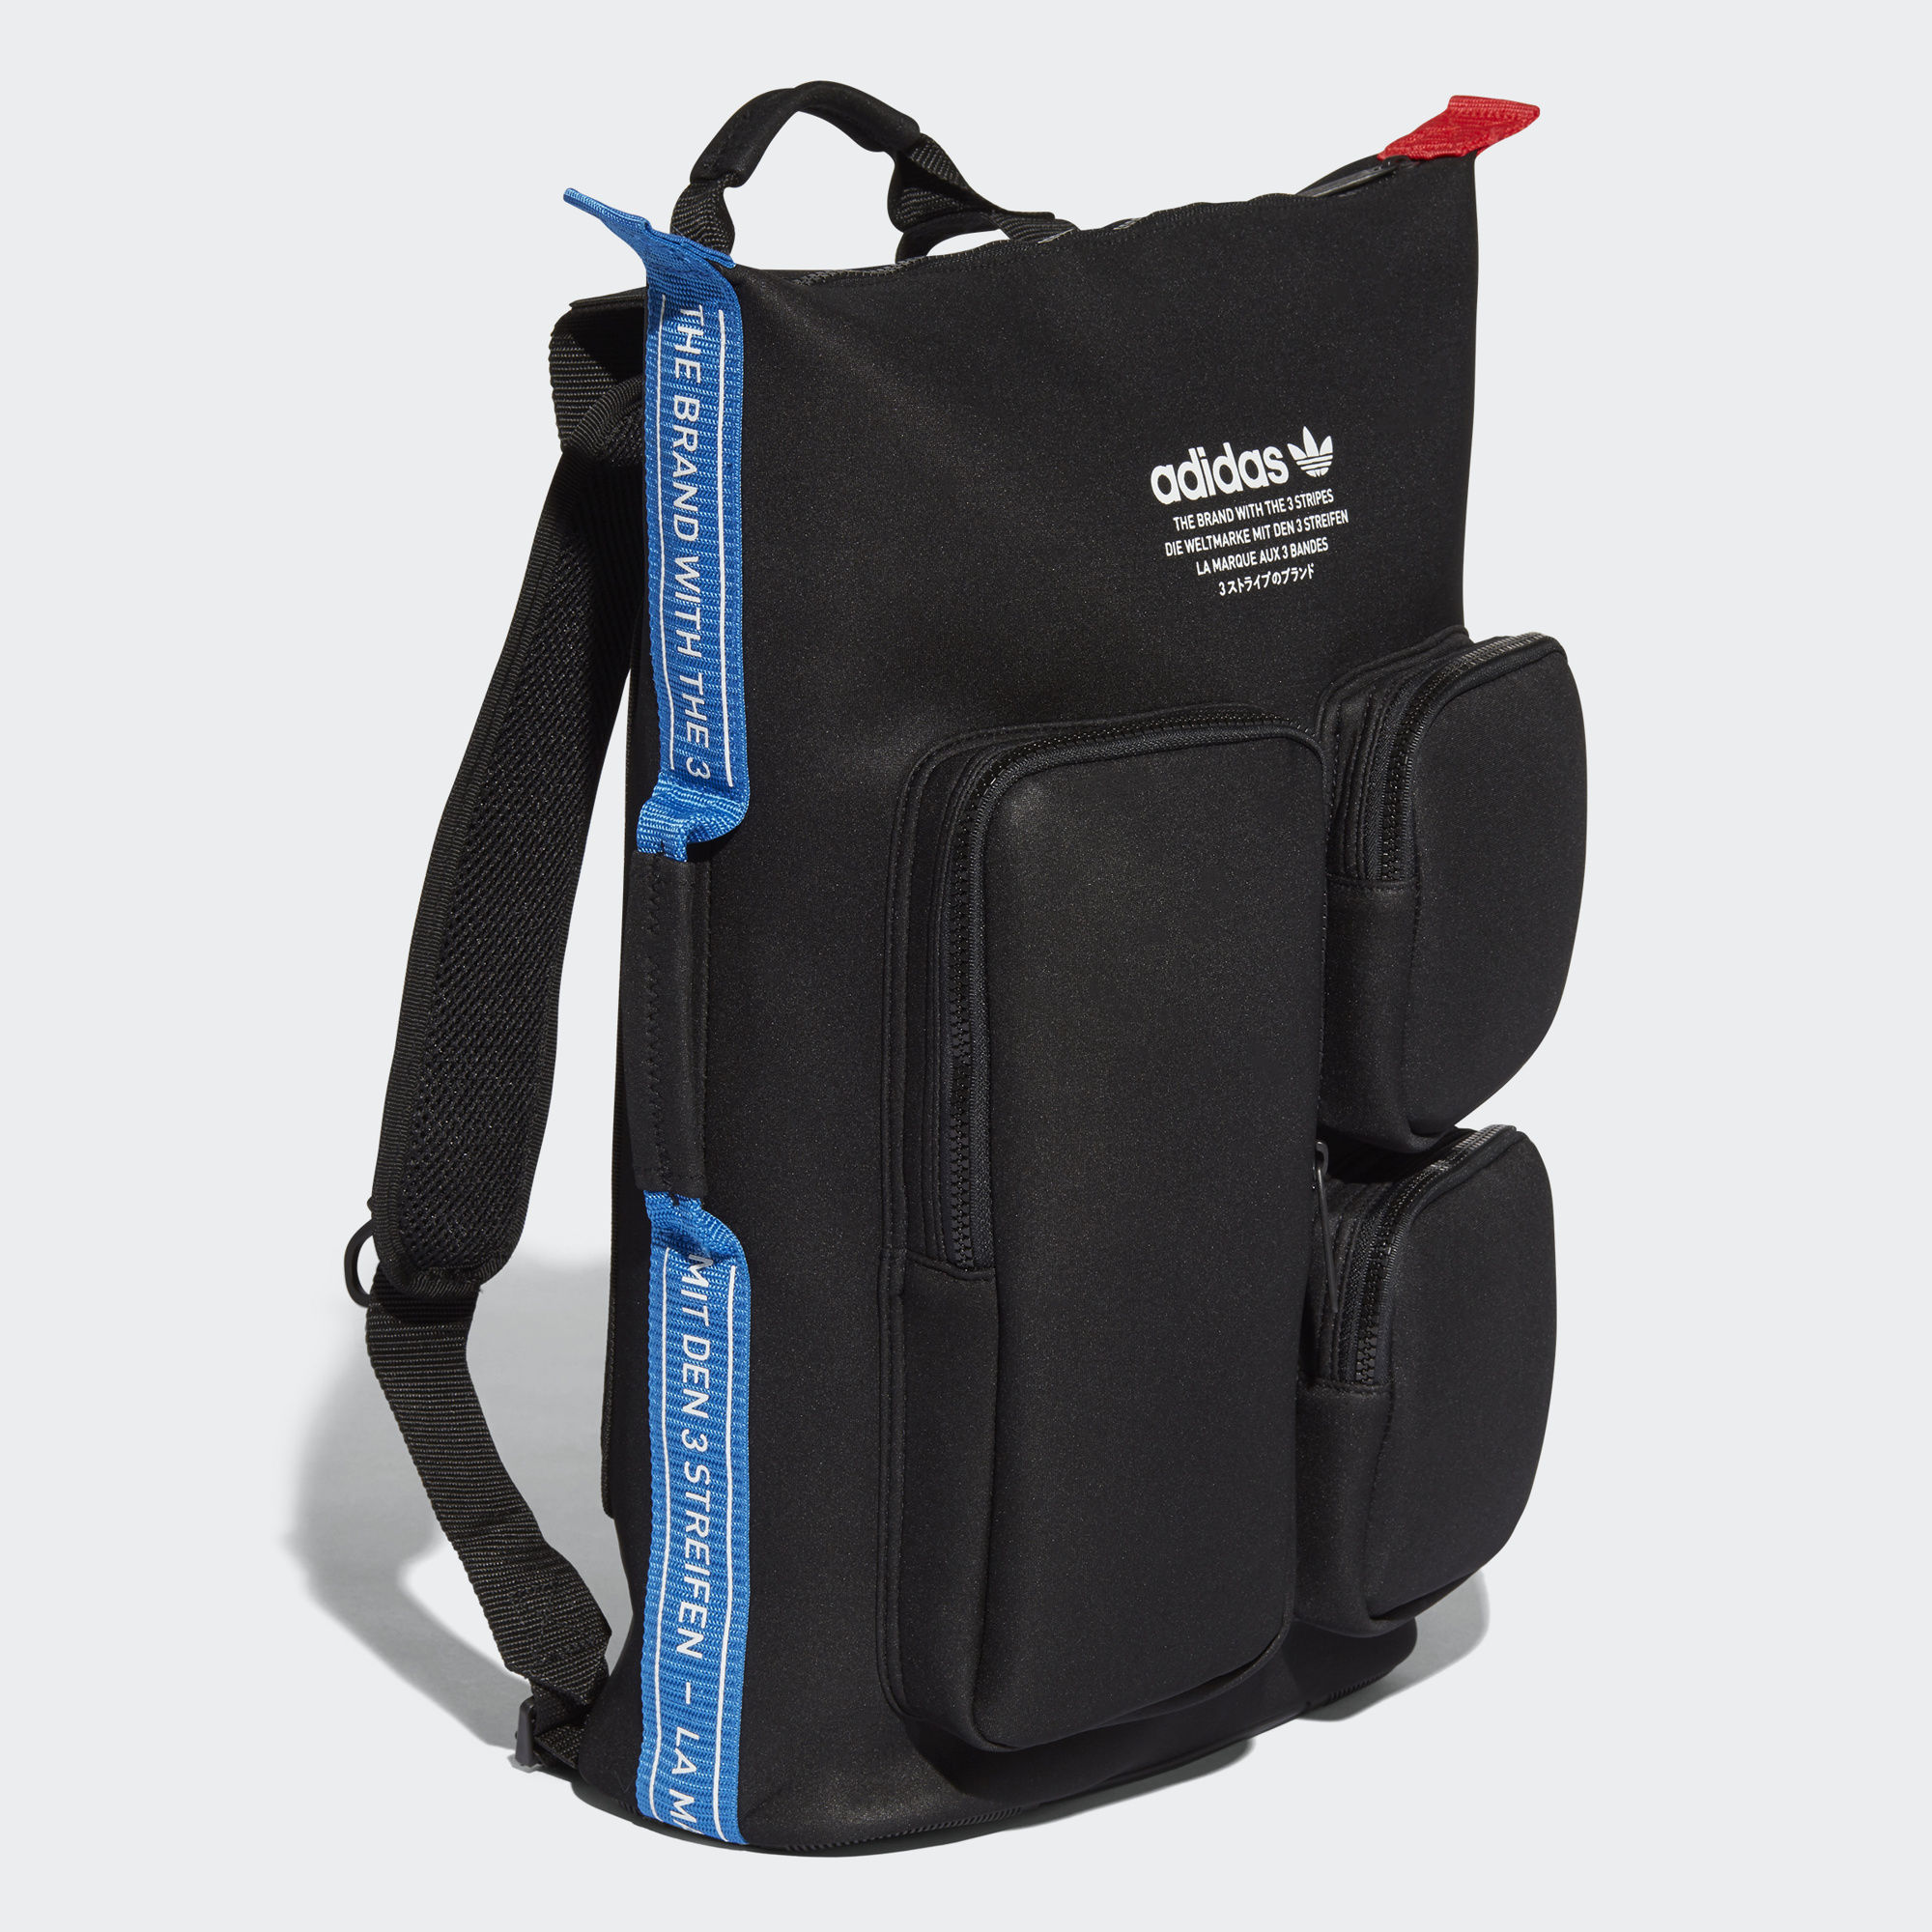 Buy Adidas Unisex Backpack Classic Design All Match Casual Bag ... | 2000x2000